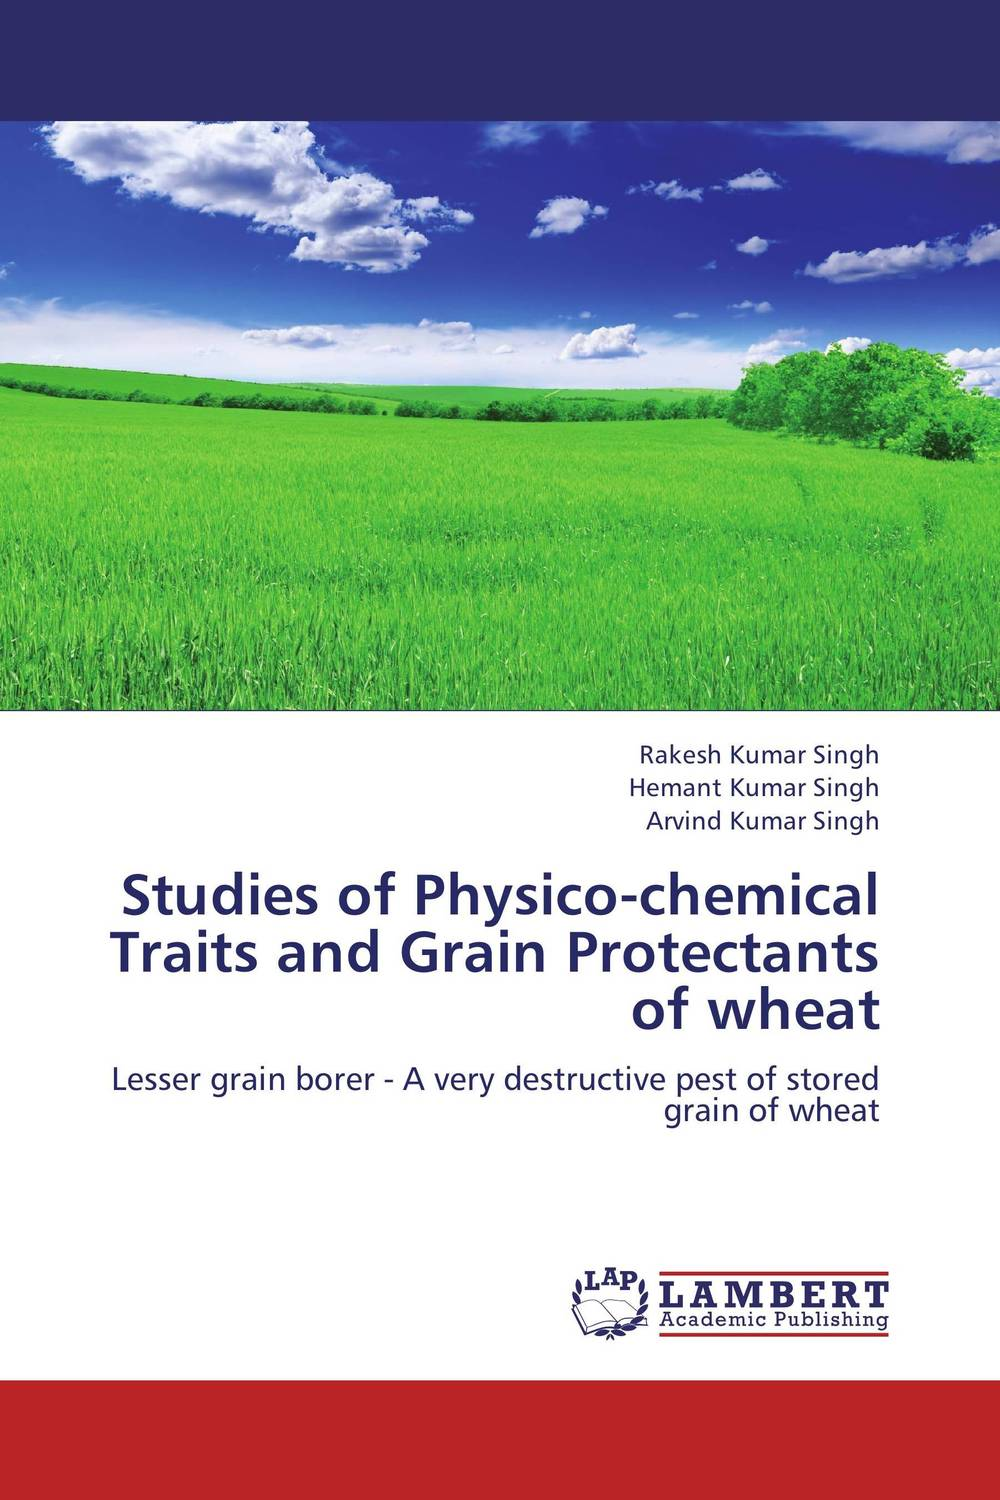 Studies of Physico-chemical Traits and Grain Protectants of wheat devices for detection and management of stored grain insects